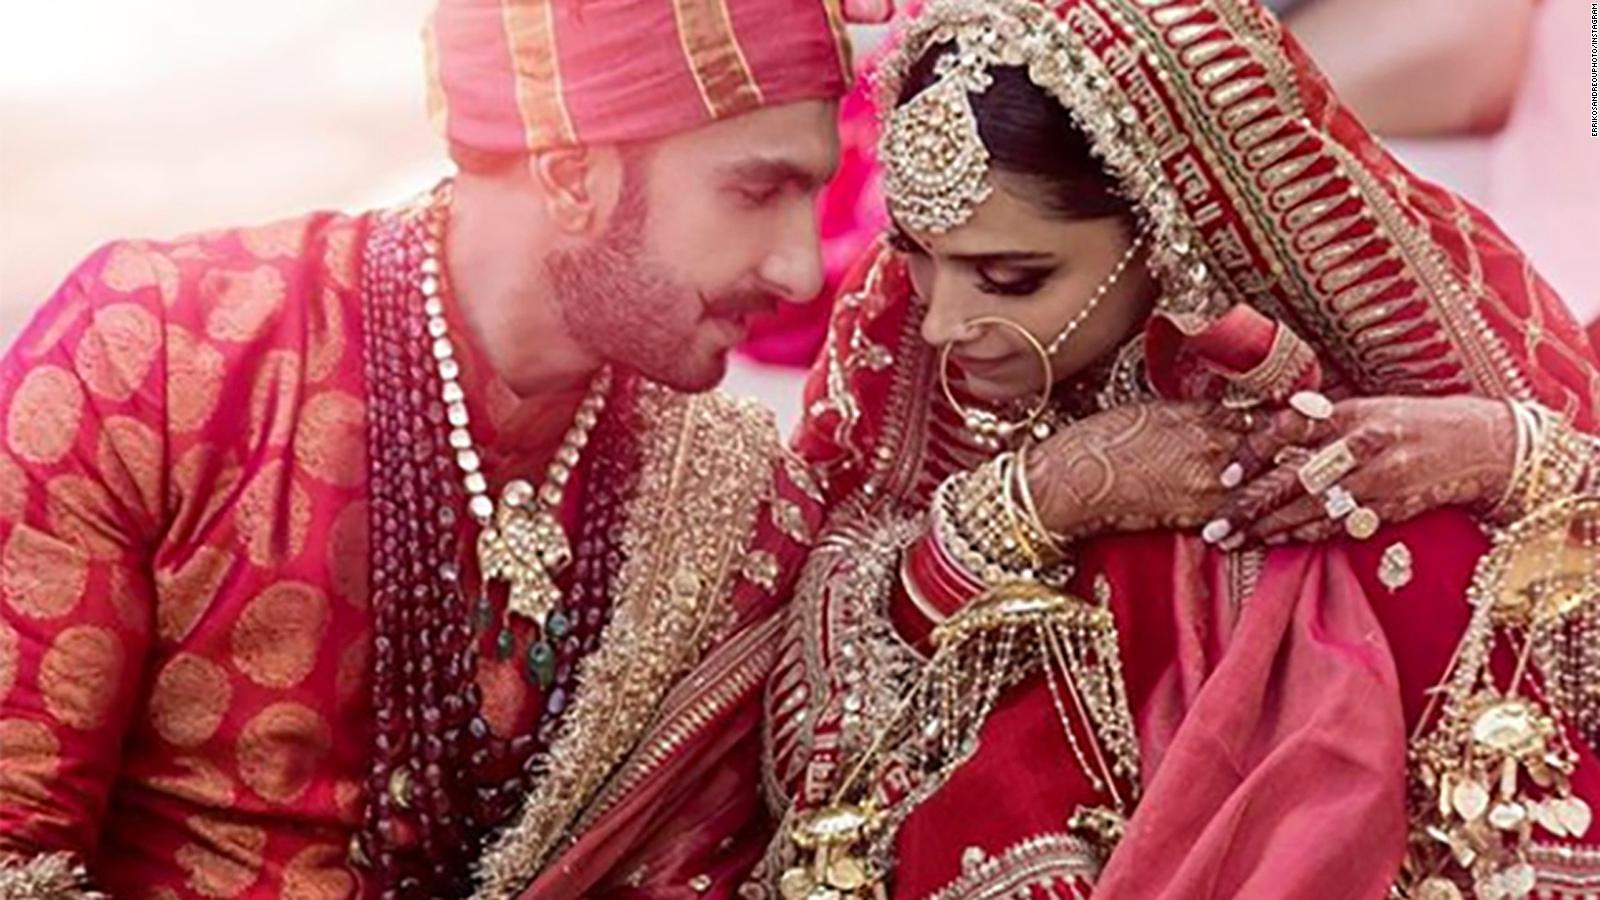 Indian weddings for the super-rich: Beyoncé, couture and palaces